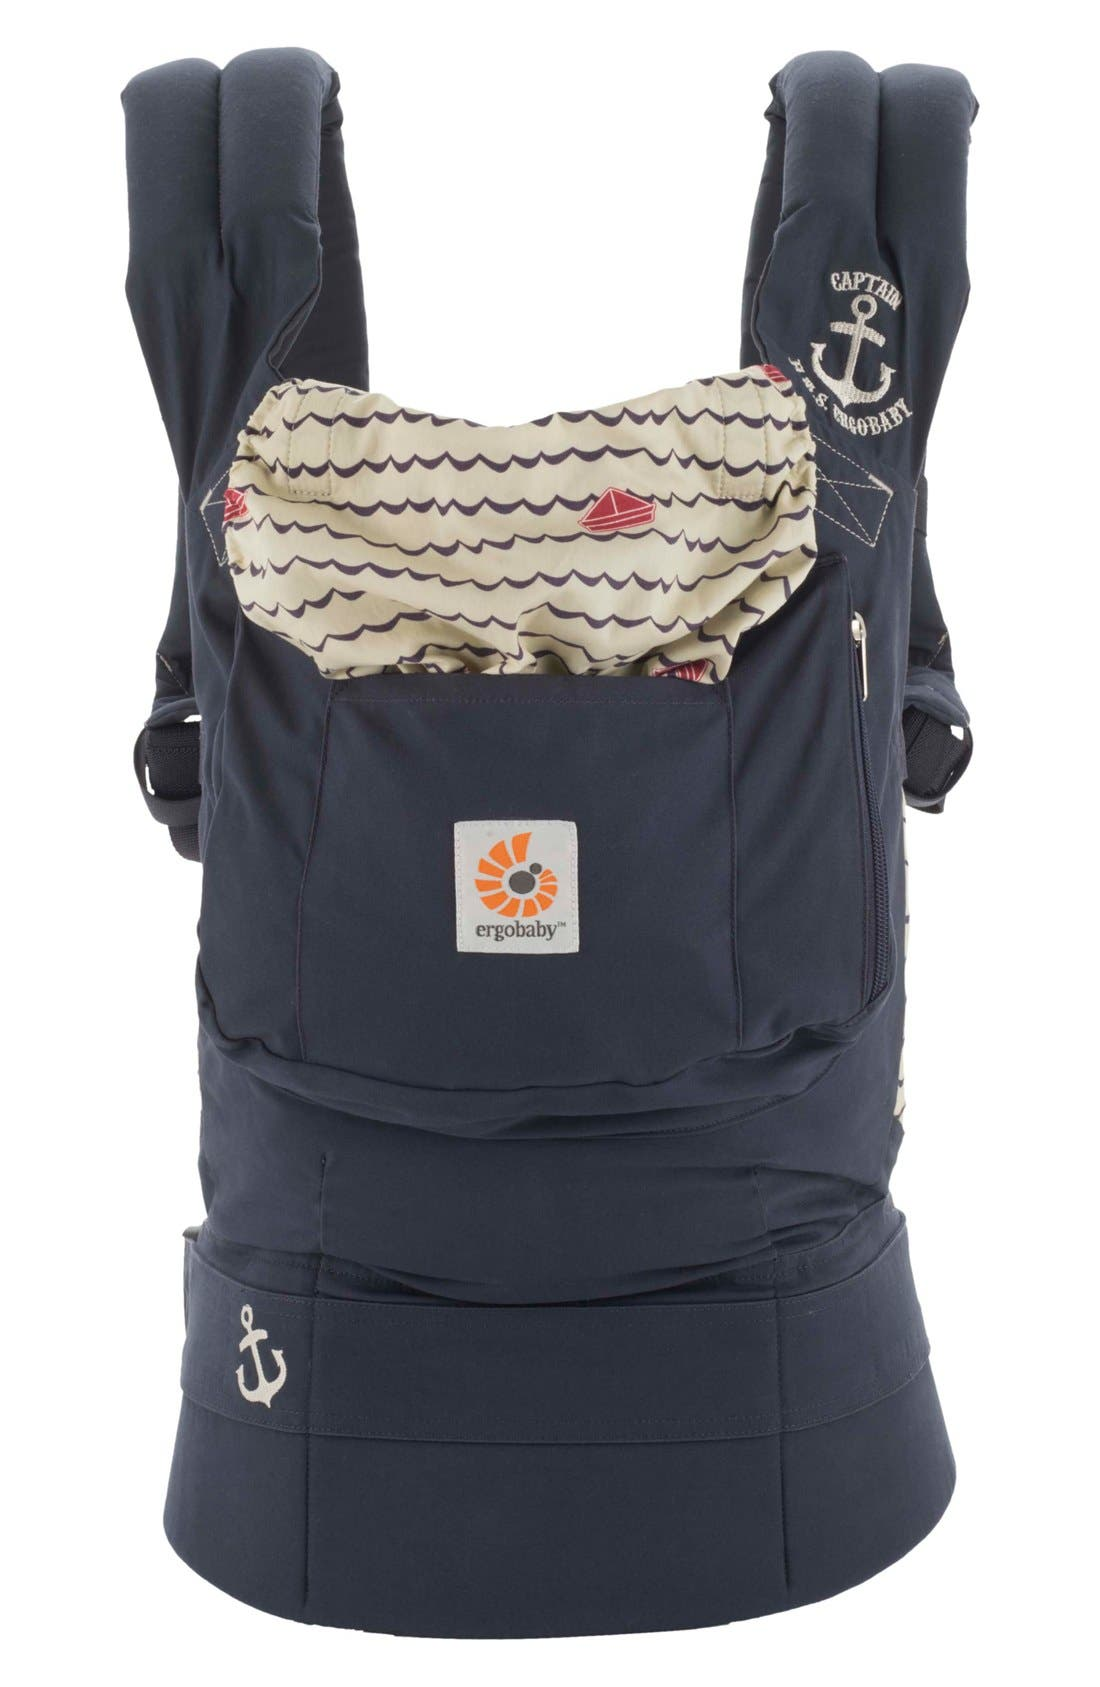 Alternate Image 1 Selected - ERGObaby 'Original' Cotton Baby Carrier (Baby)